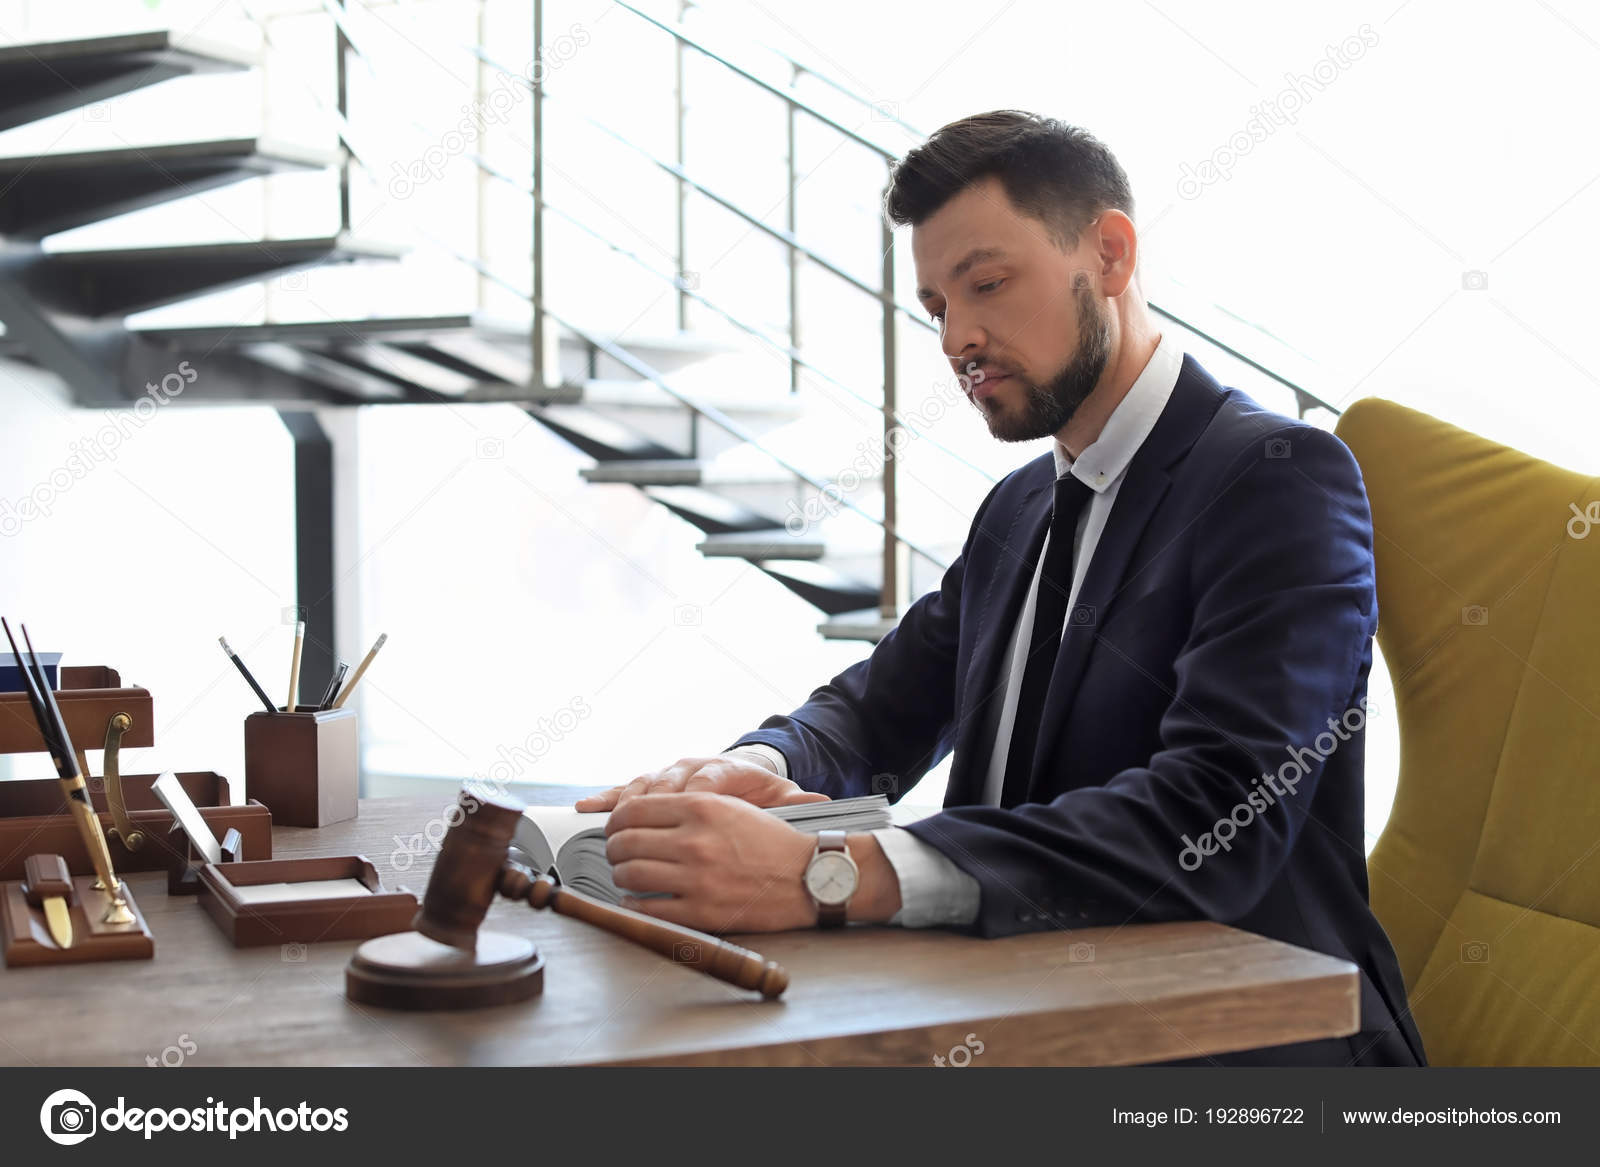 Male lawyer working in office — Stock Photo © liudmilachernetska@gmail.com #192896722